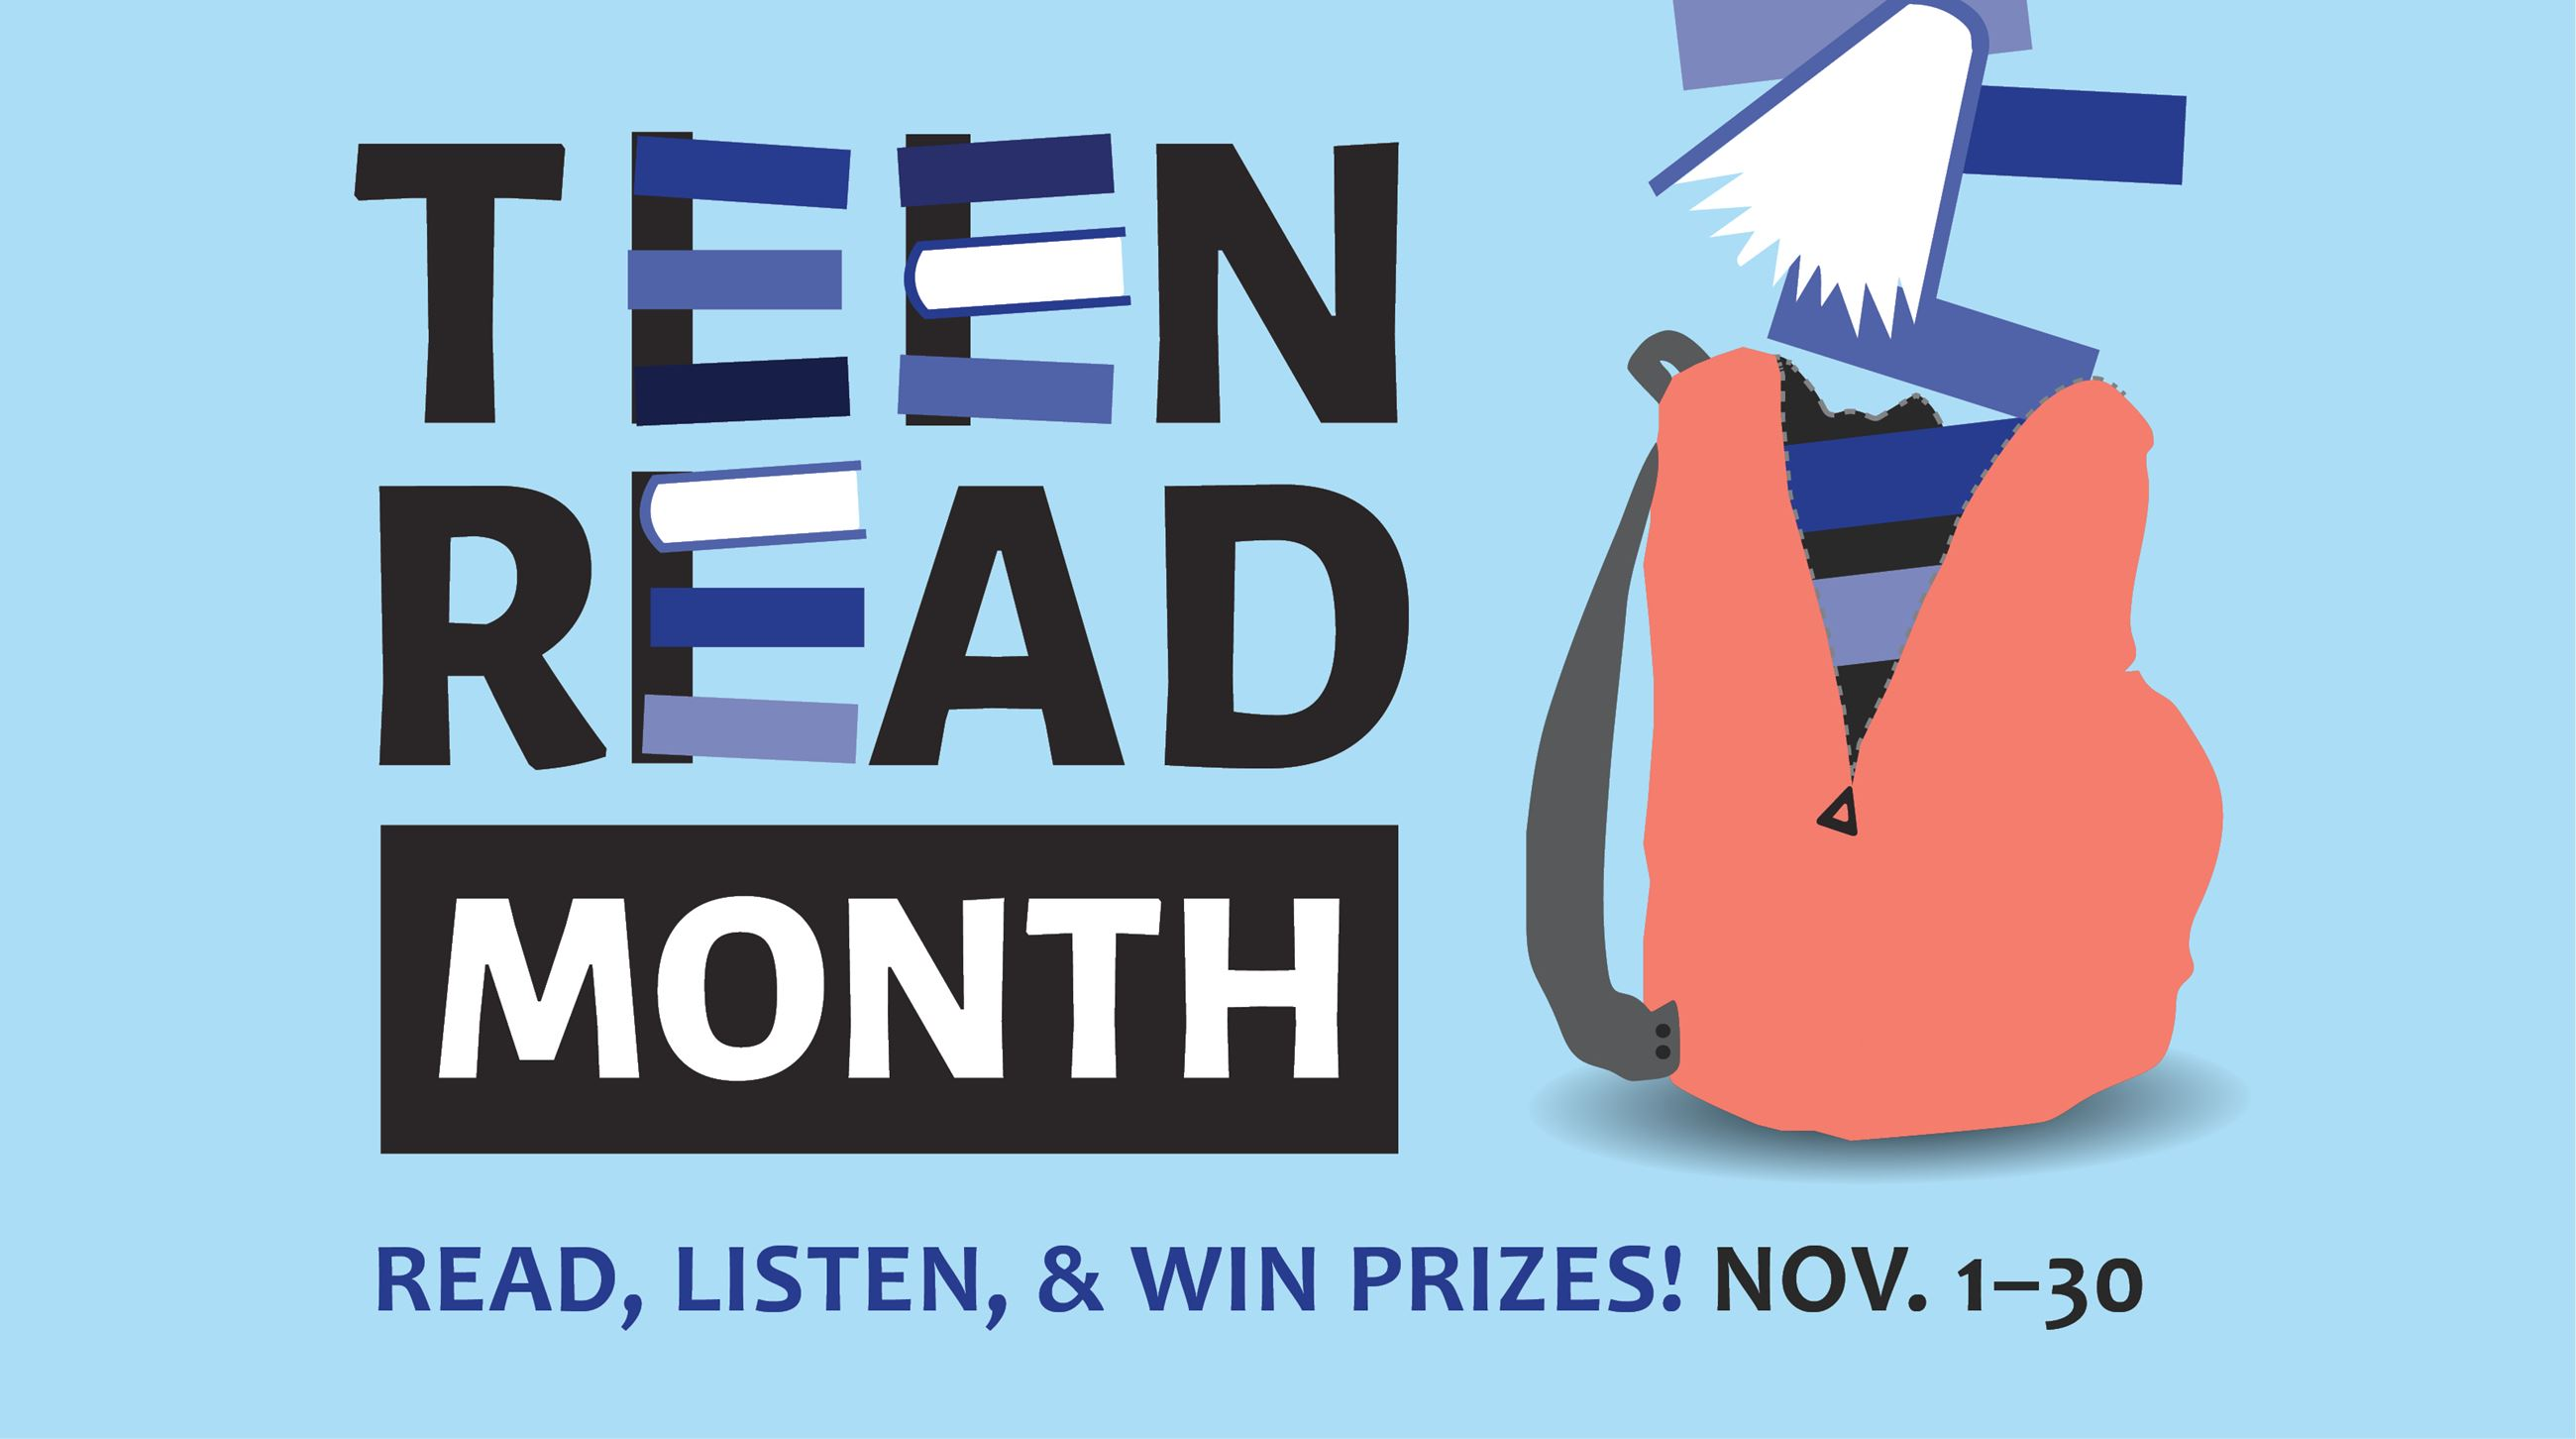 Banner for November 2019, Teen Read Month, shows a backpack full of books.